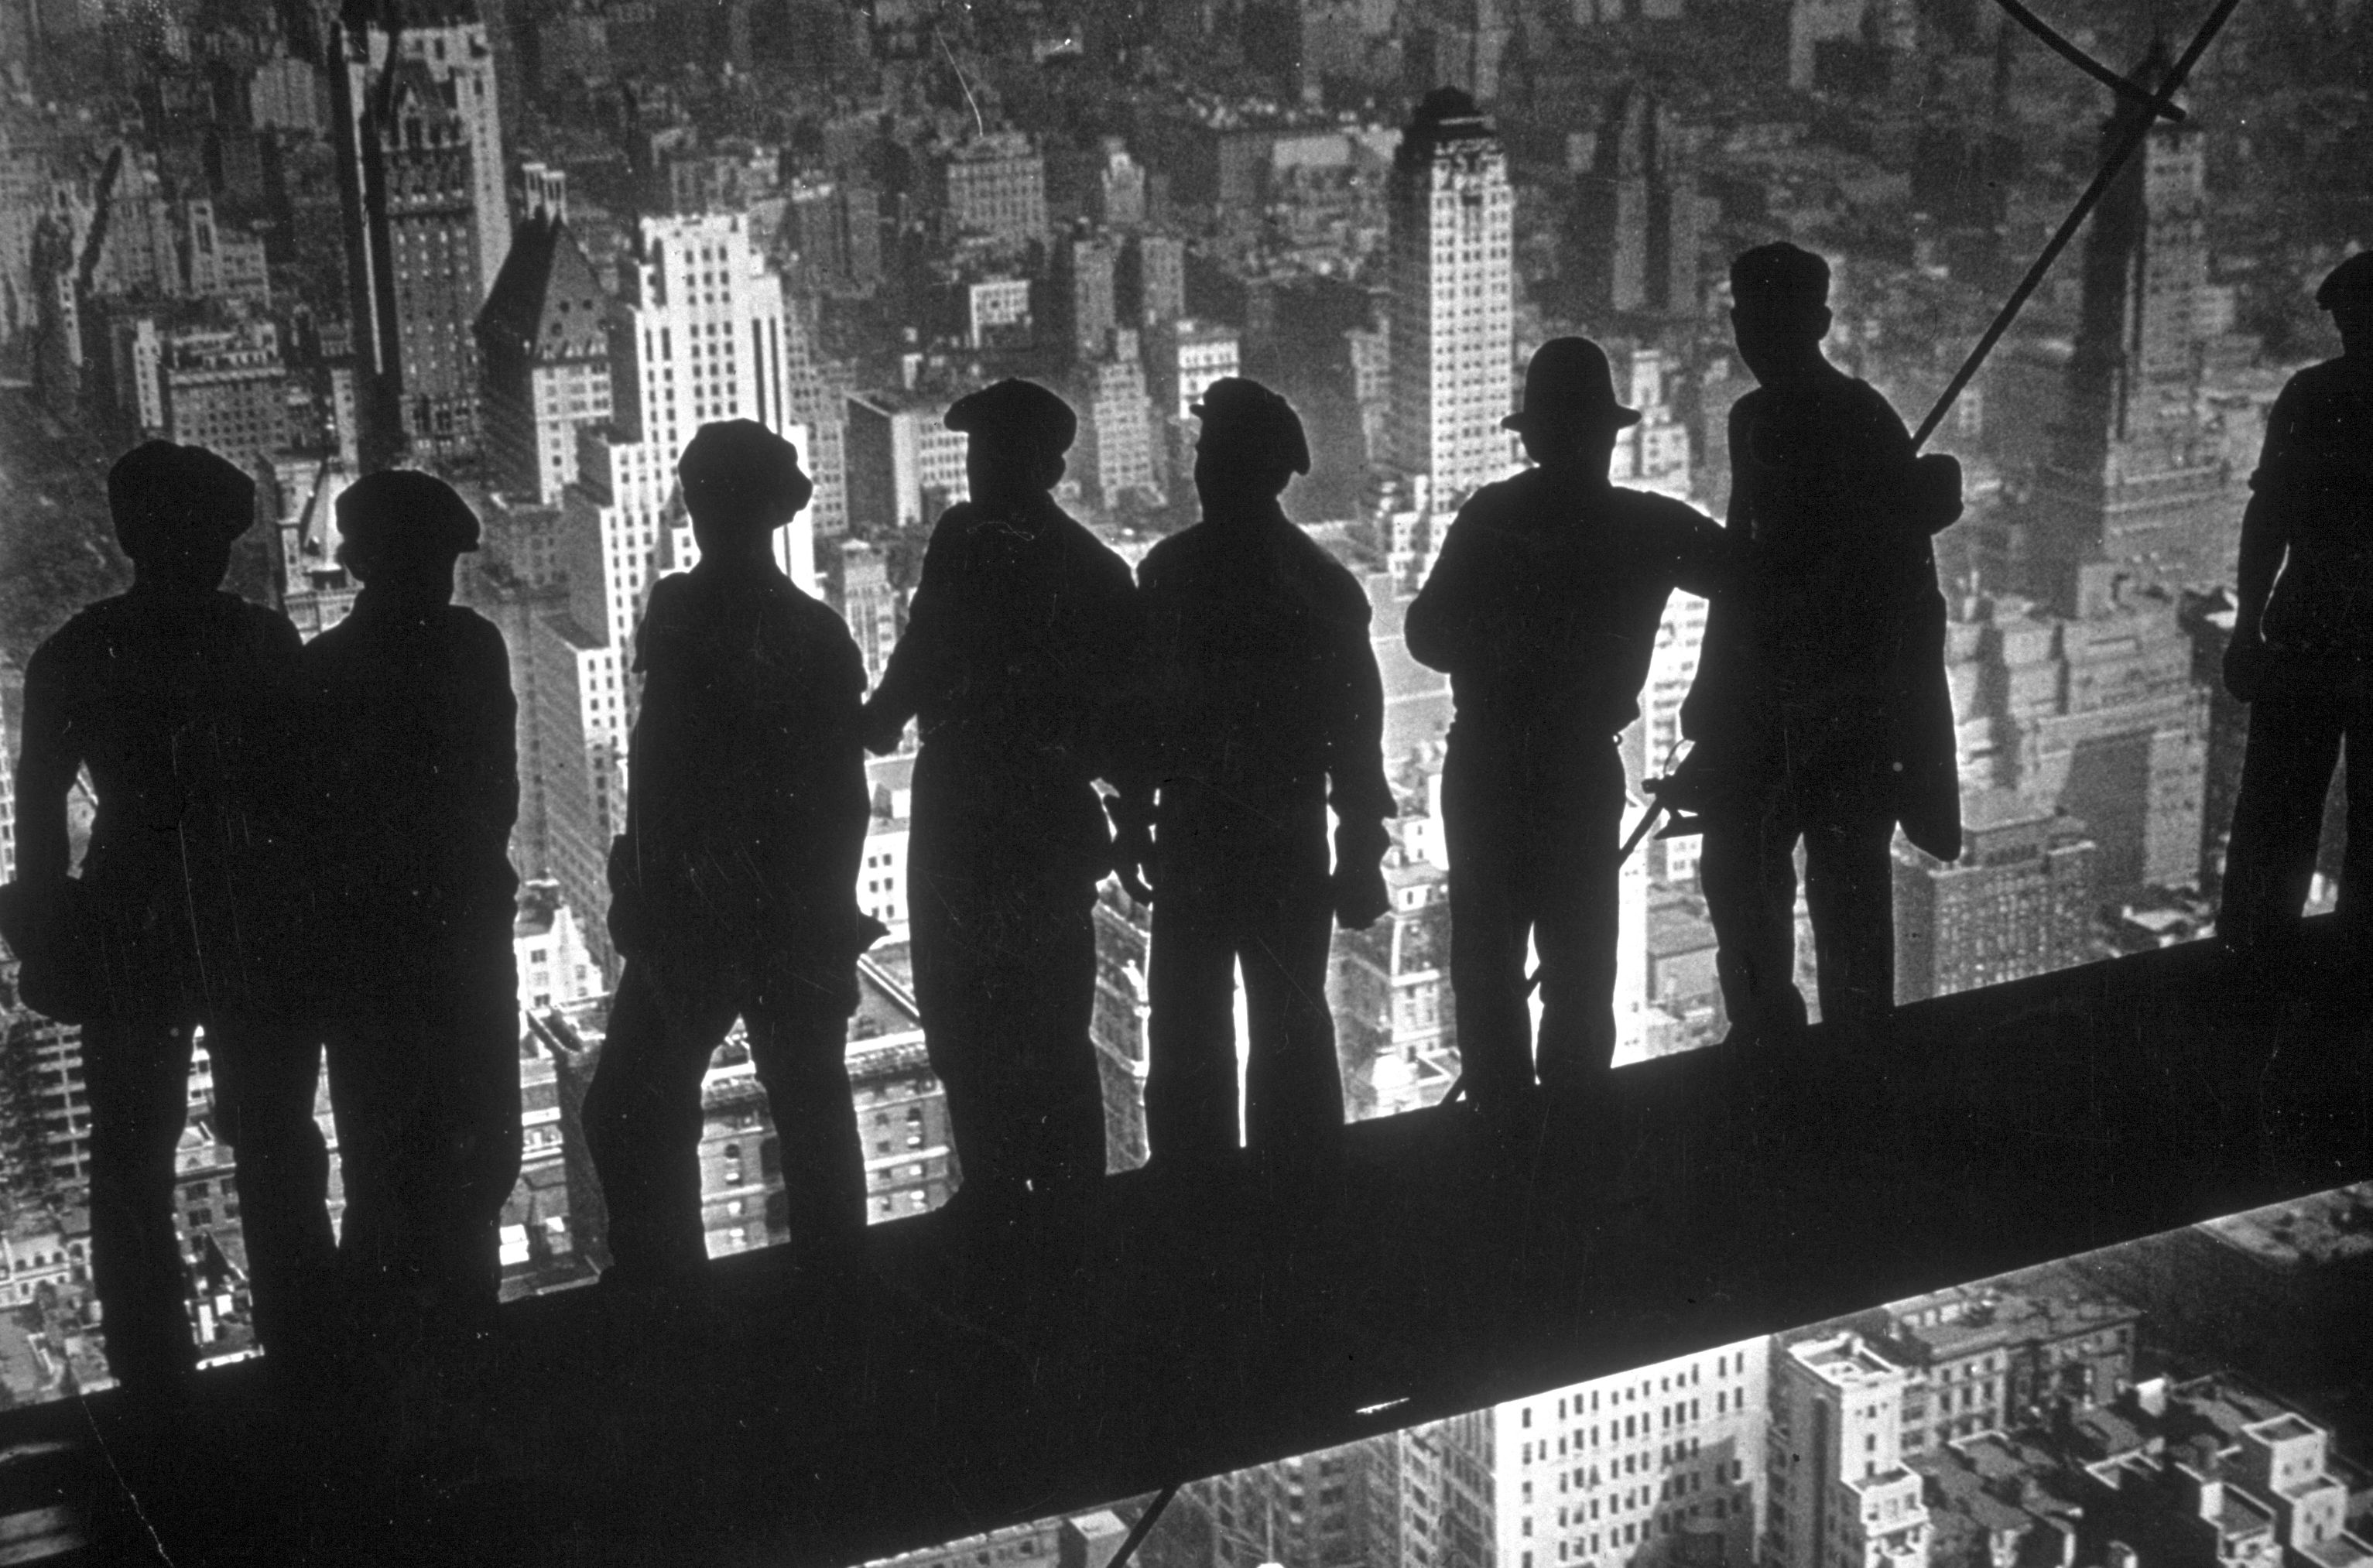 A group of steelworkers stand on scaffolding.